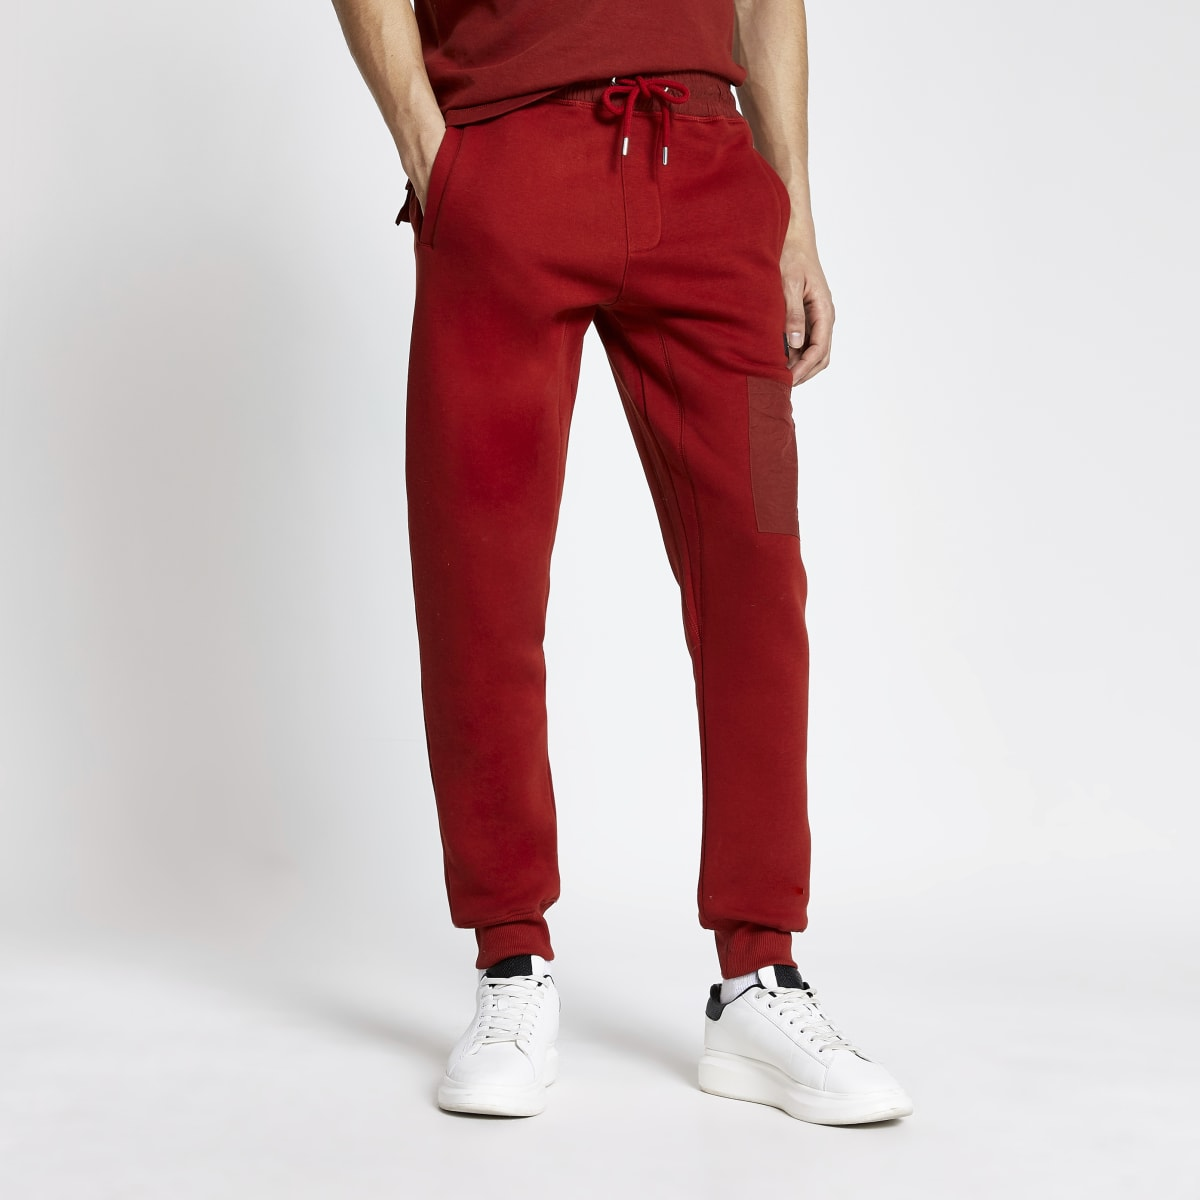 Pastel Tech red nylon blocked joggers